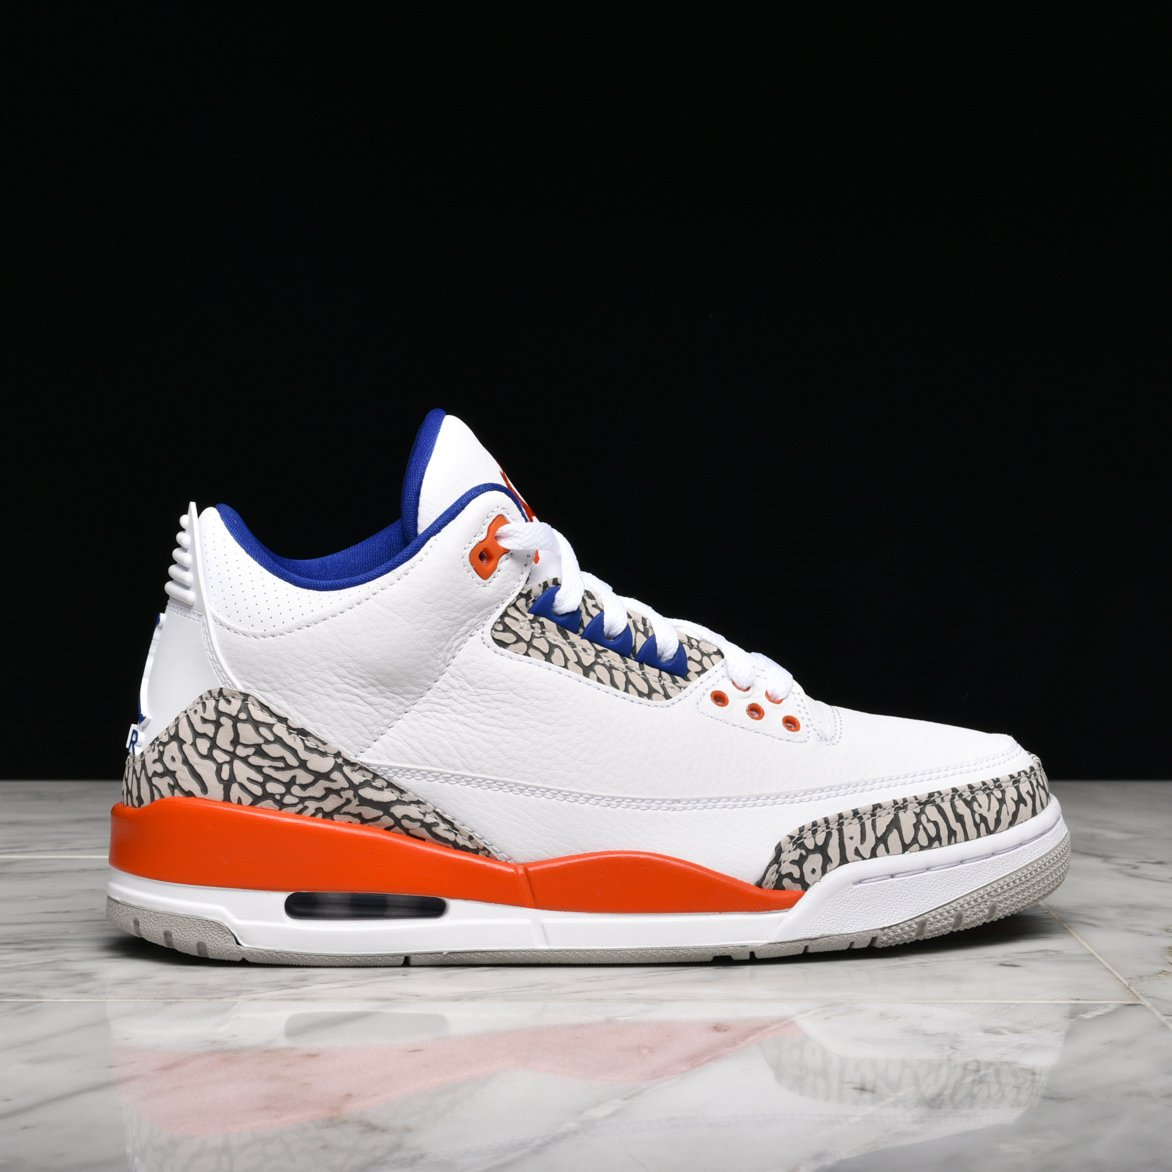 Air Jordan 3 Retro 'Knicks' | 136064-148